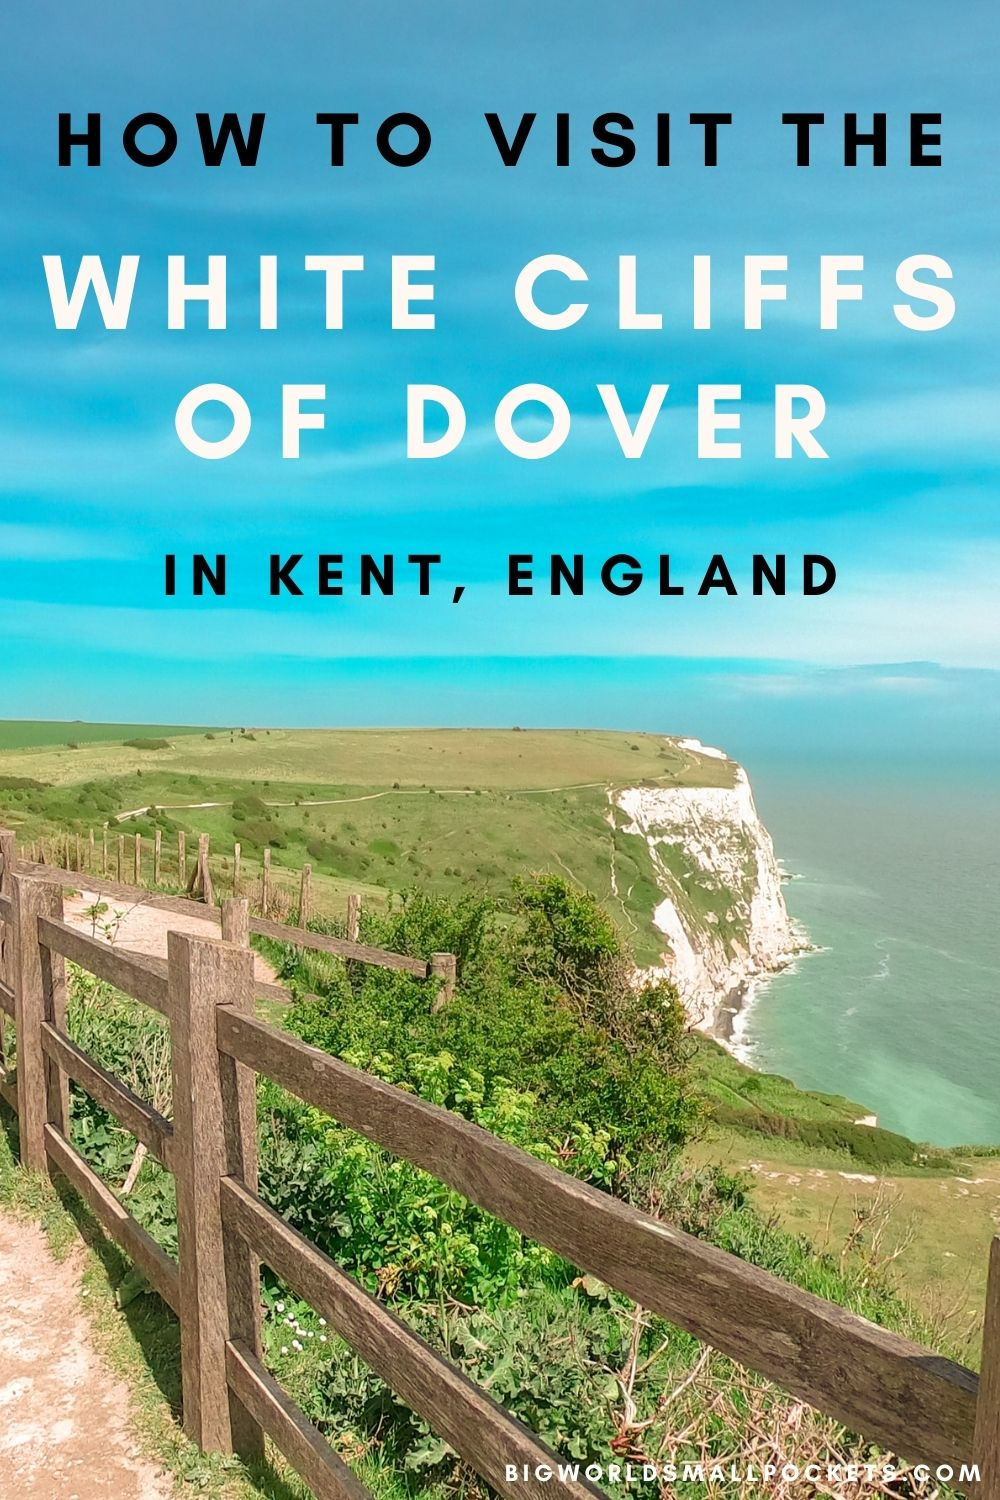 How to Visit the White Cliffs of Dover in Kent, England